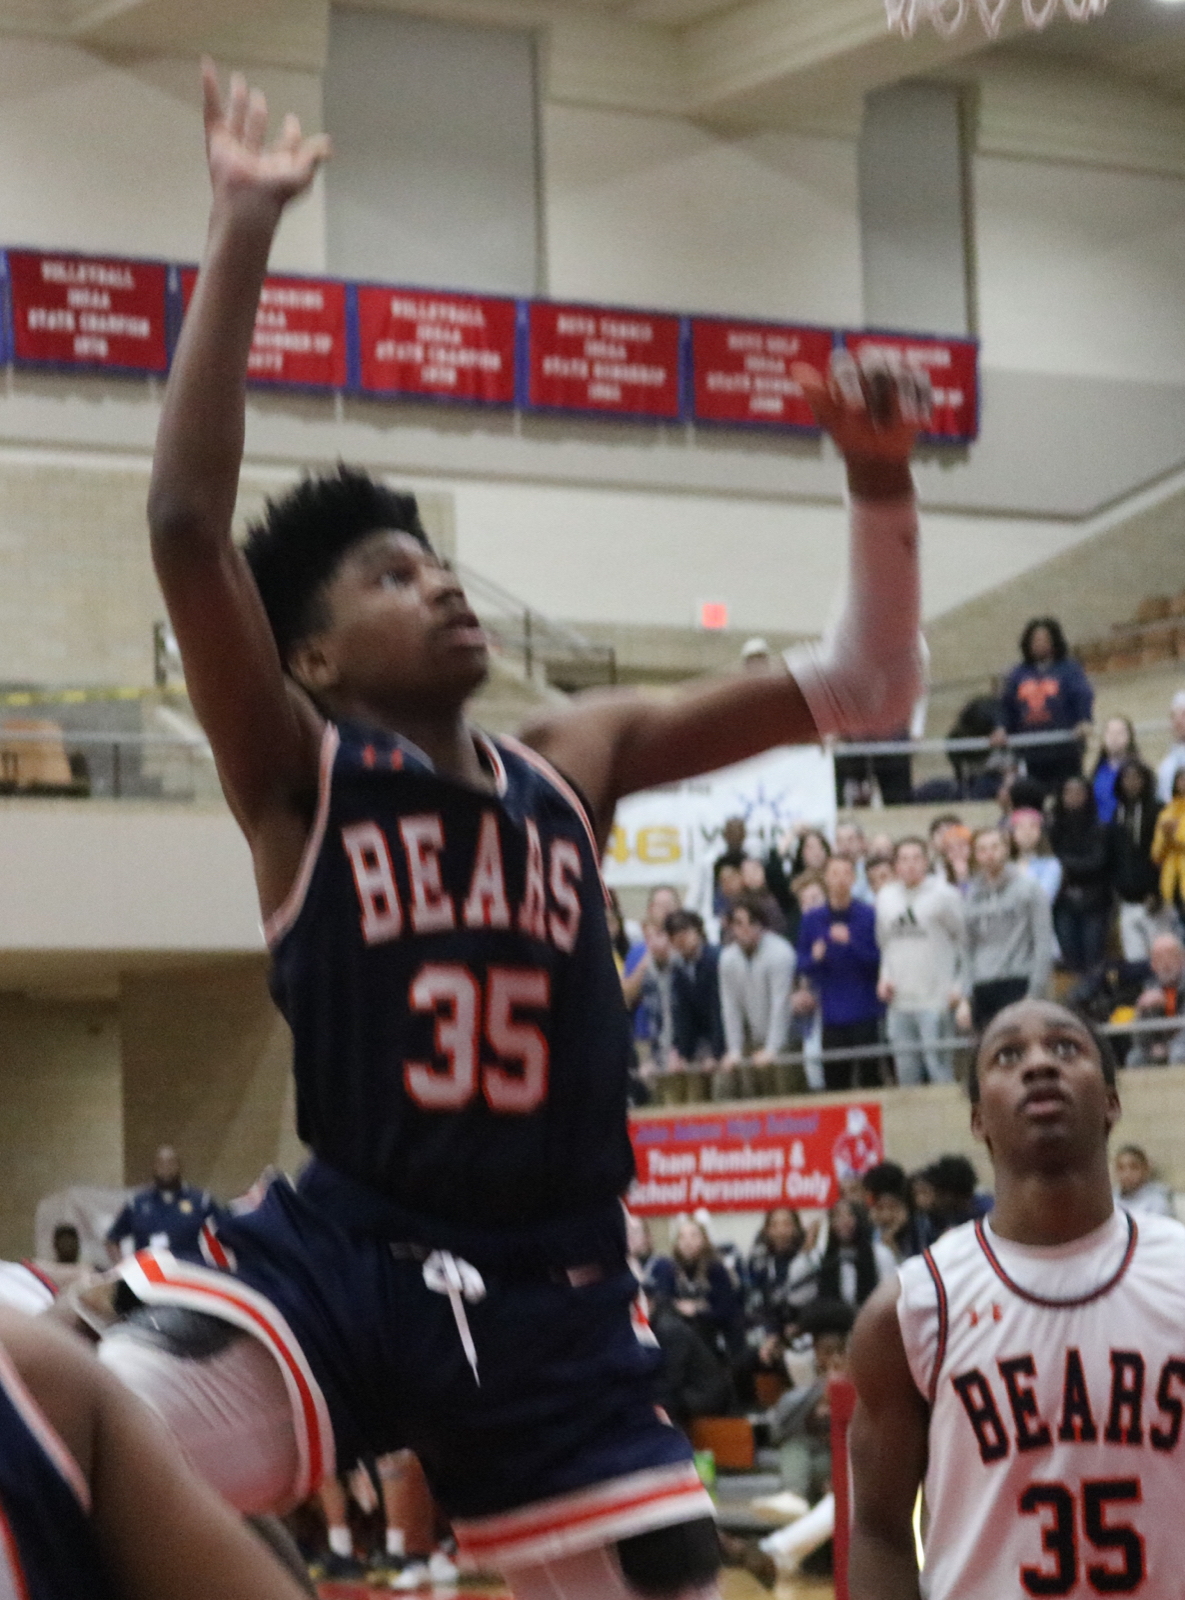 Blake Wesley received four new offers; ND, IU, Purdue, & UC.